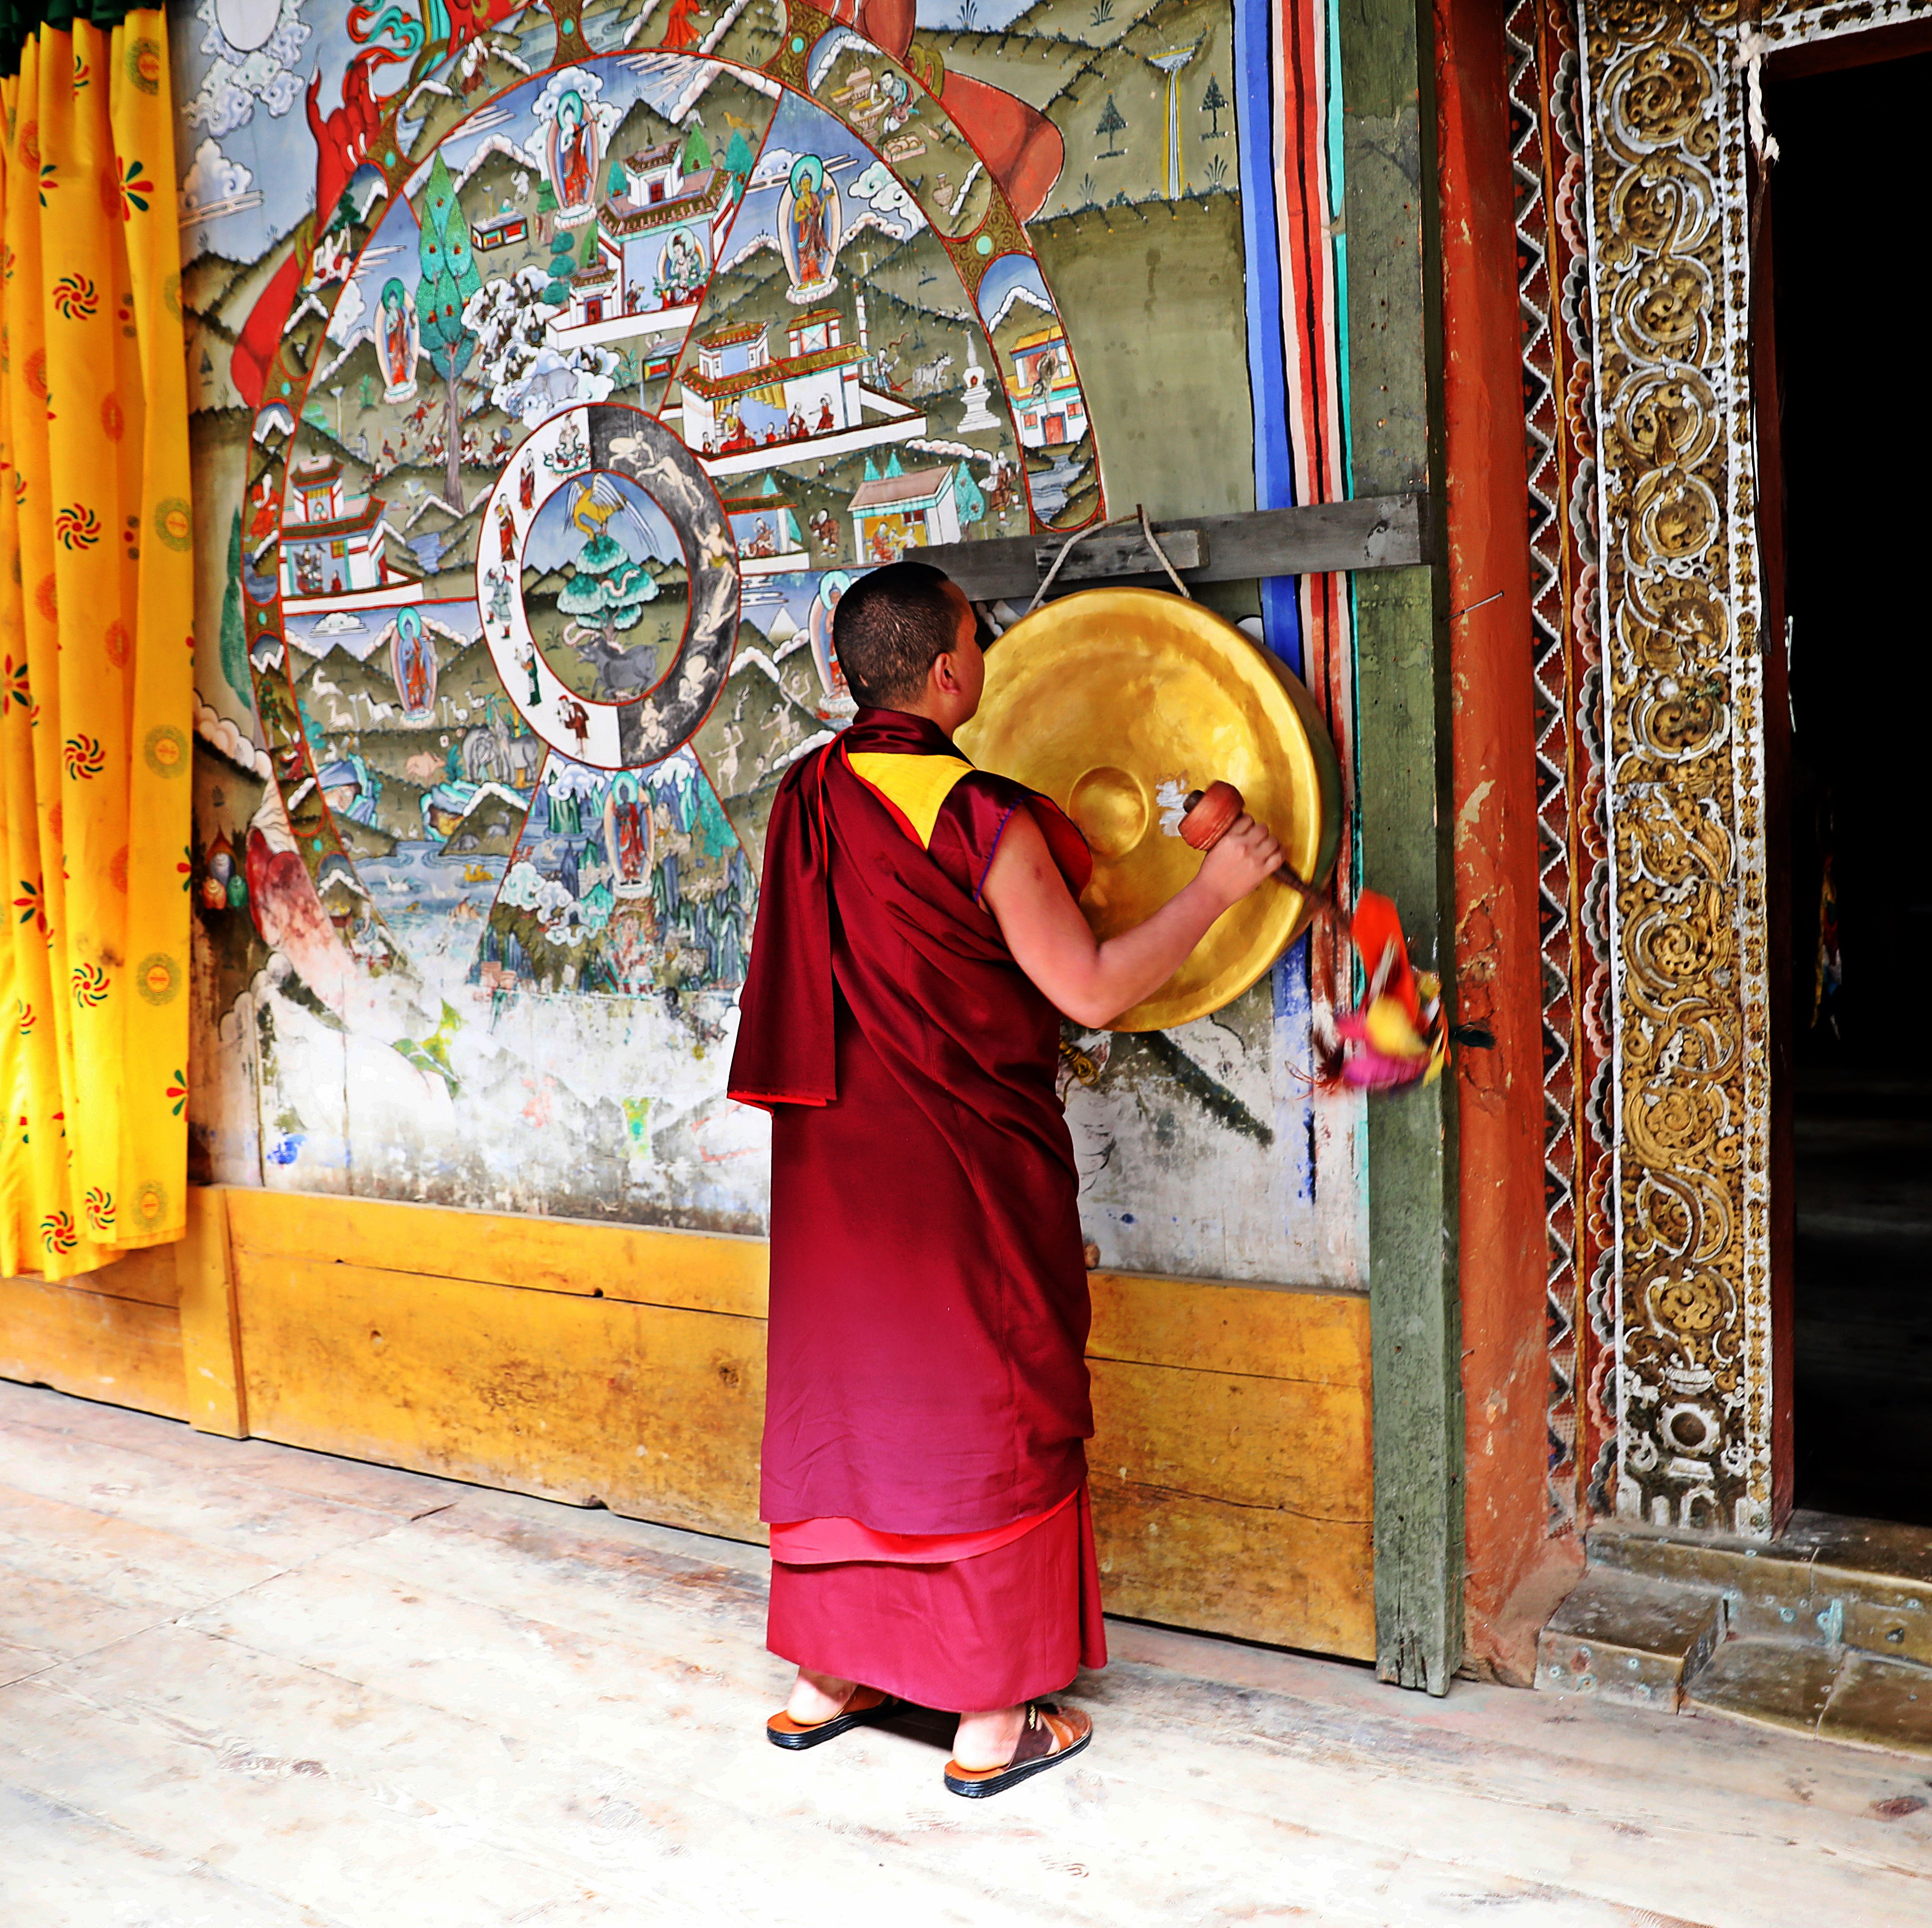 Ringing a gong to summon monks for evening chant